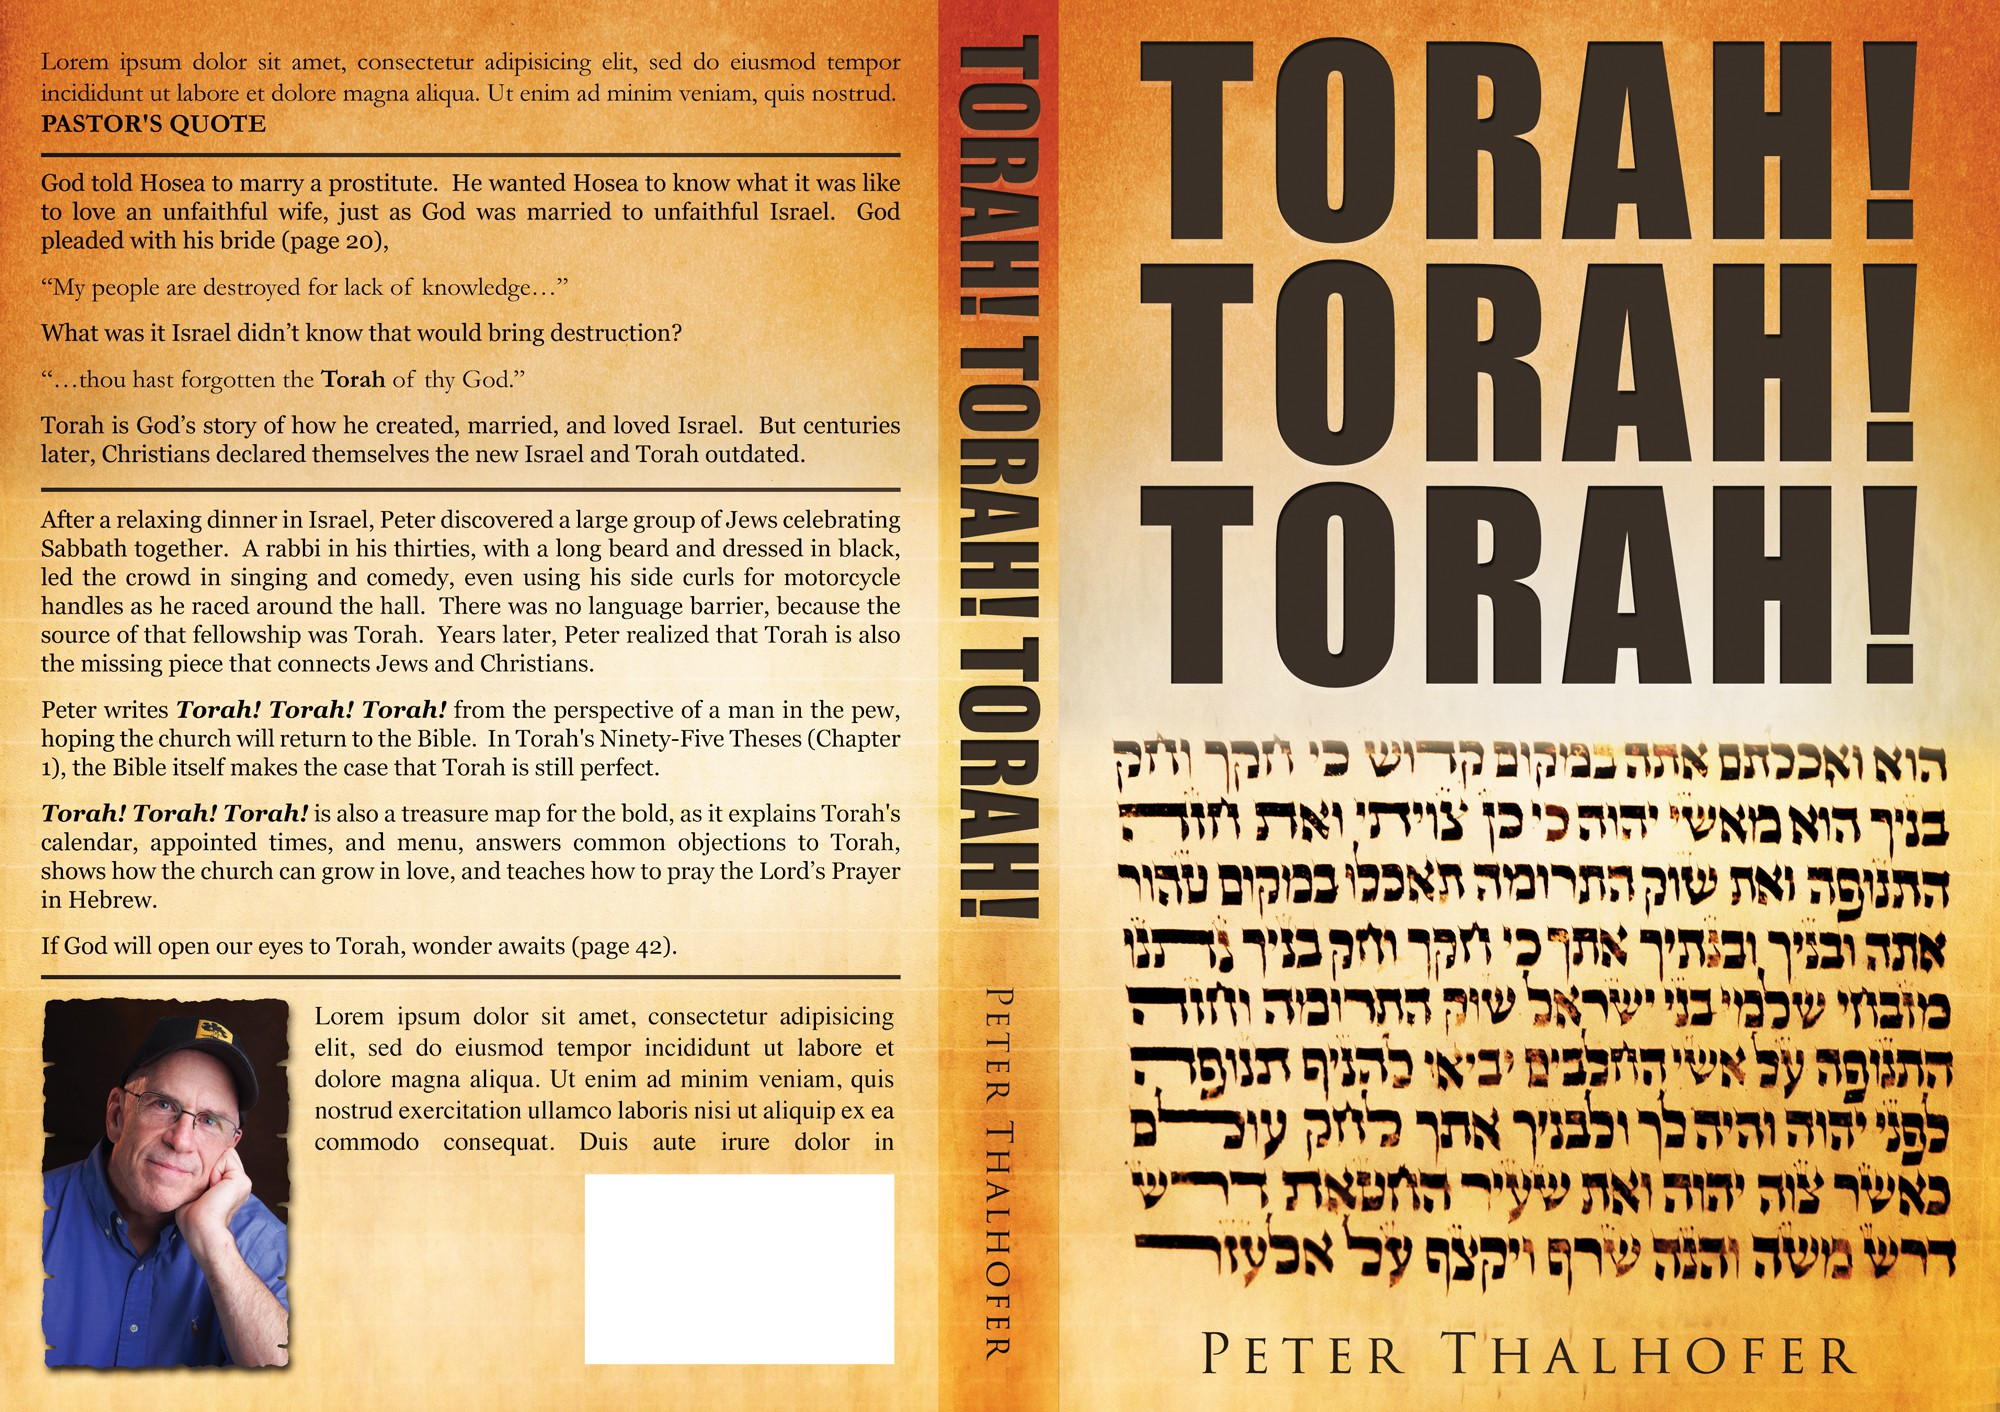 A book cover that makes people want to learn more about Torah.